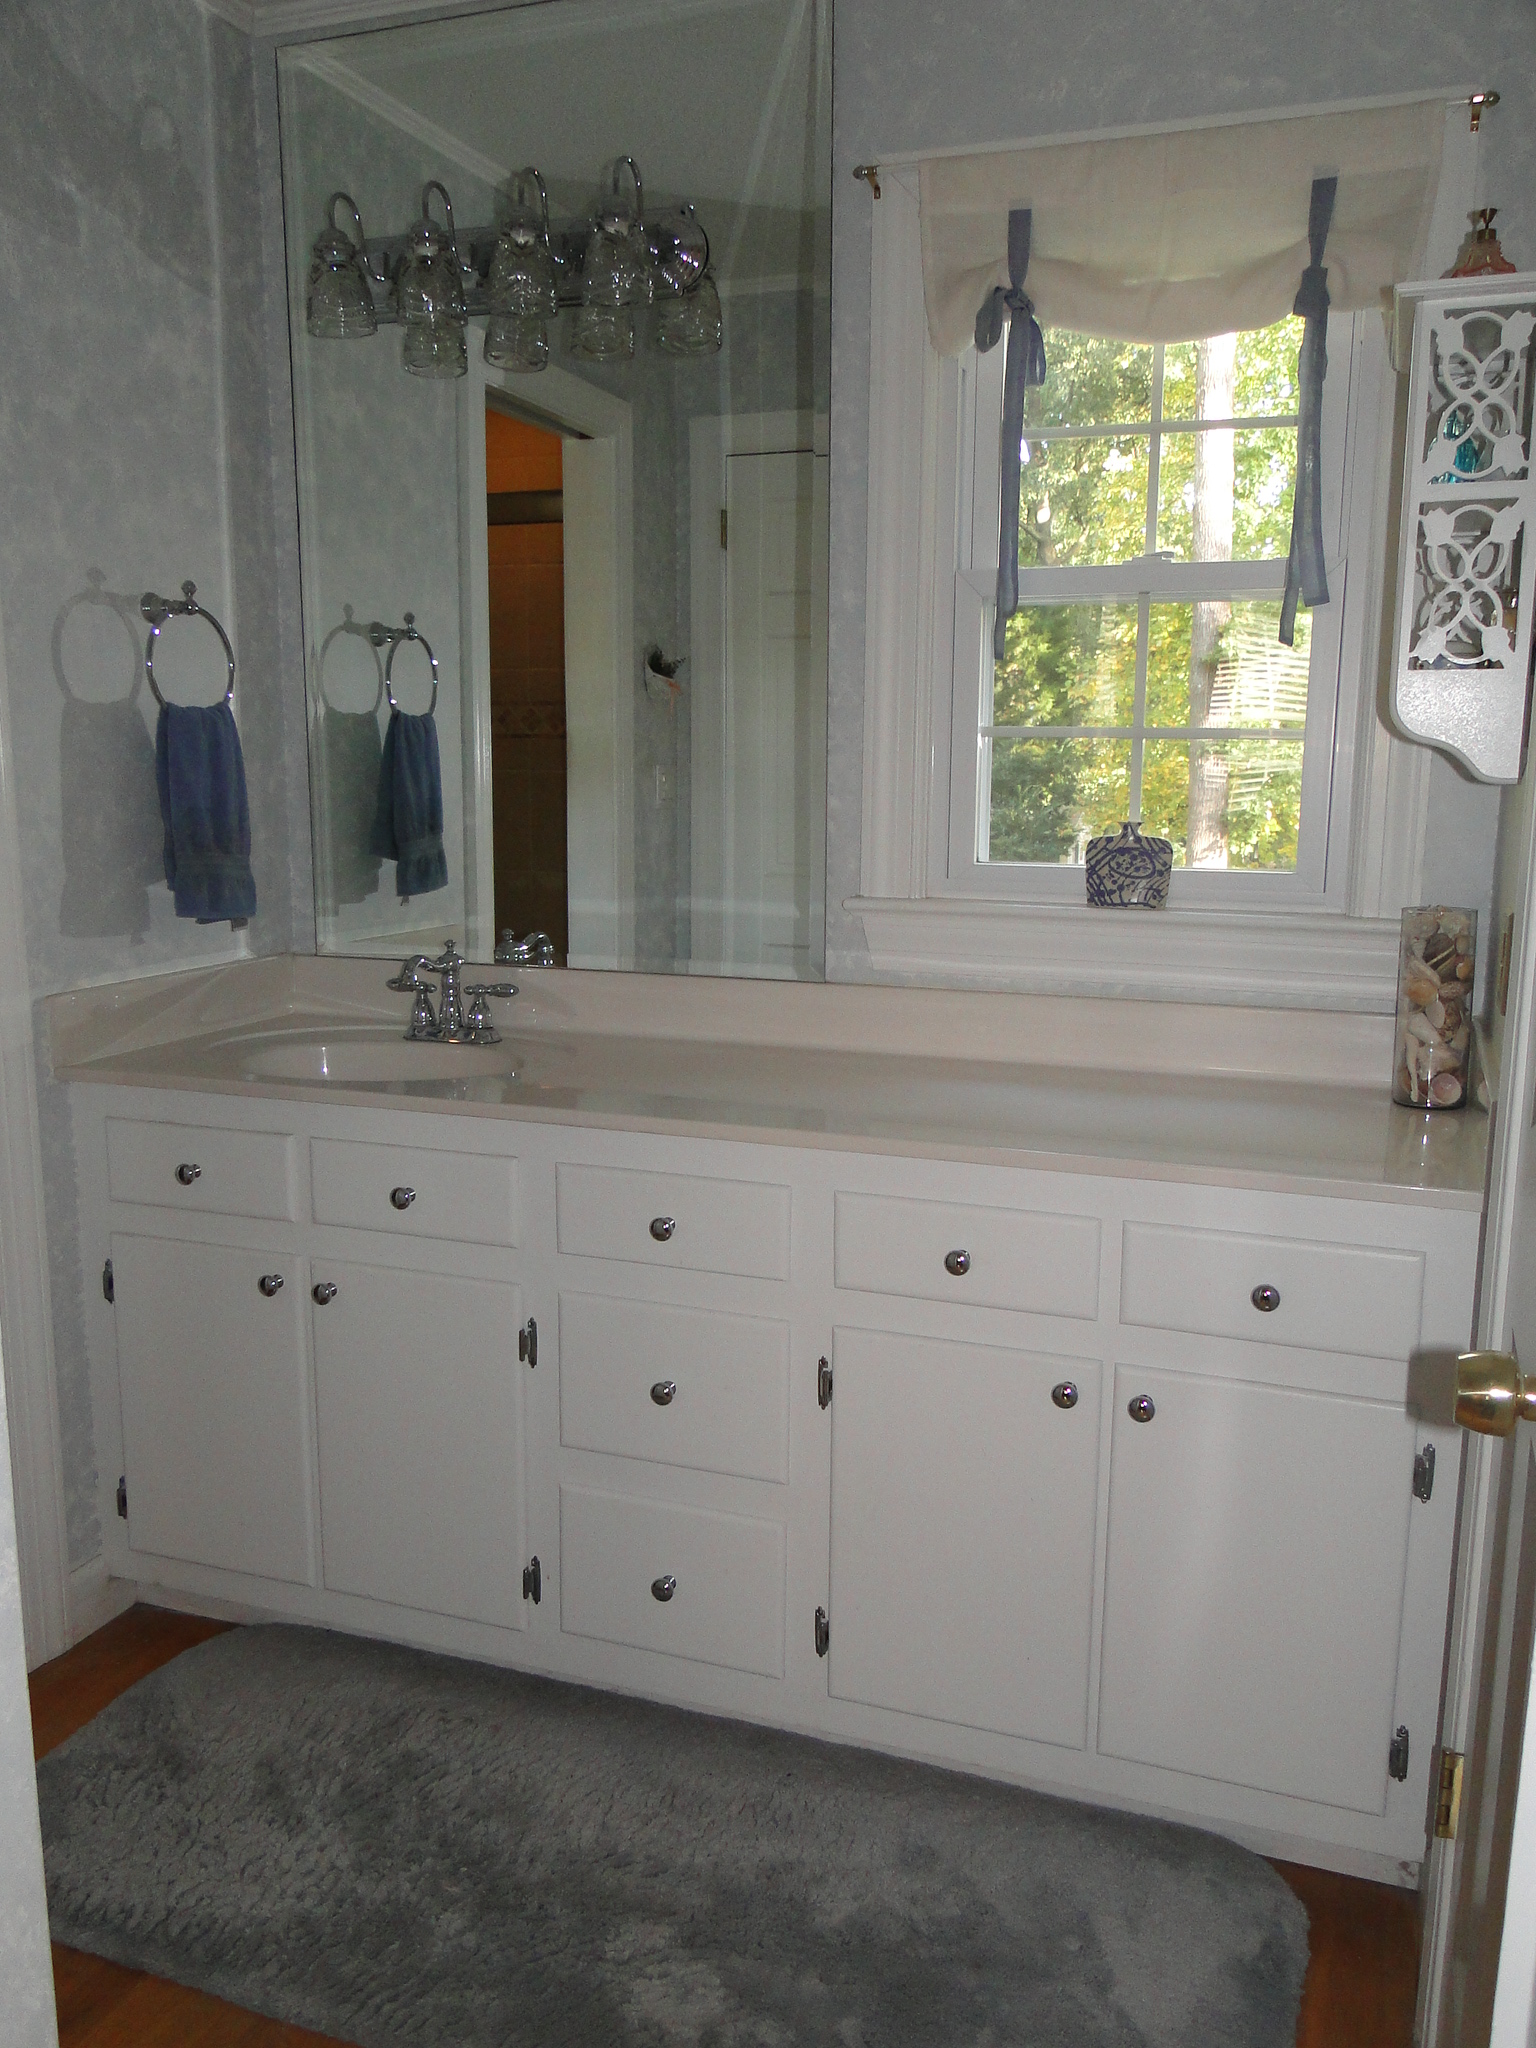 Bathroom Vanities Virginia Beach kings grant home with a pool - byrd realty group